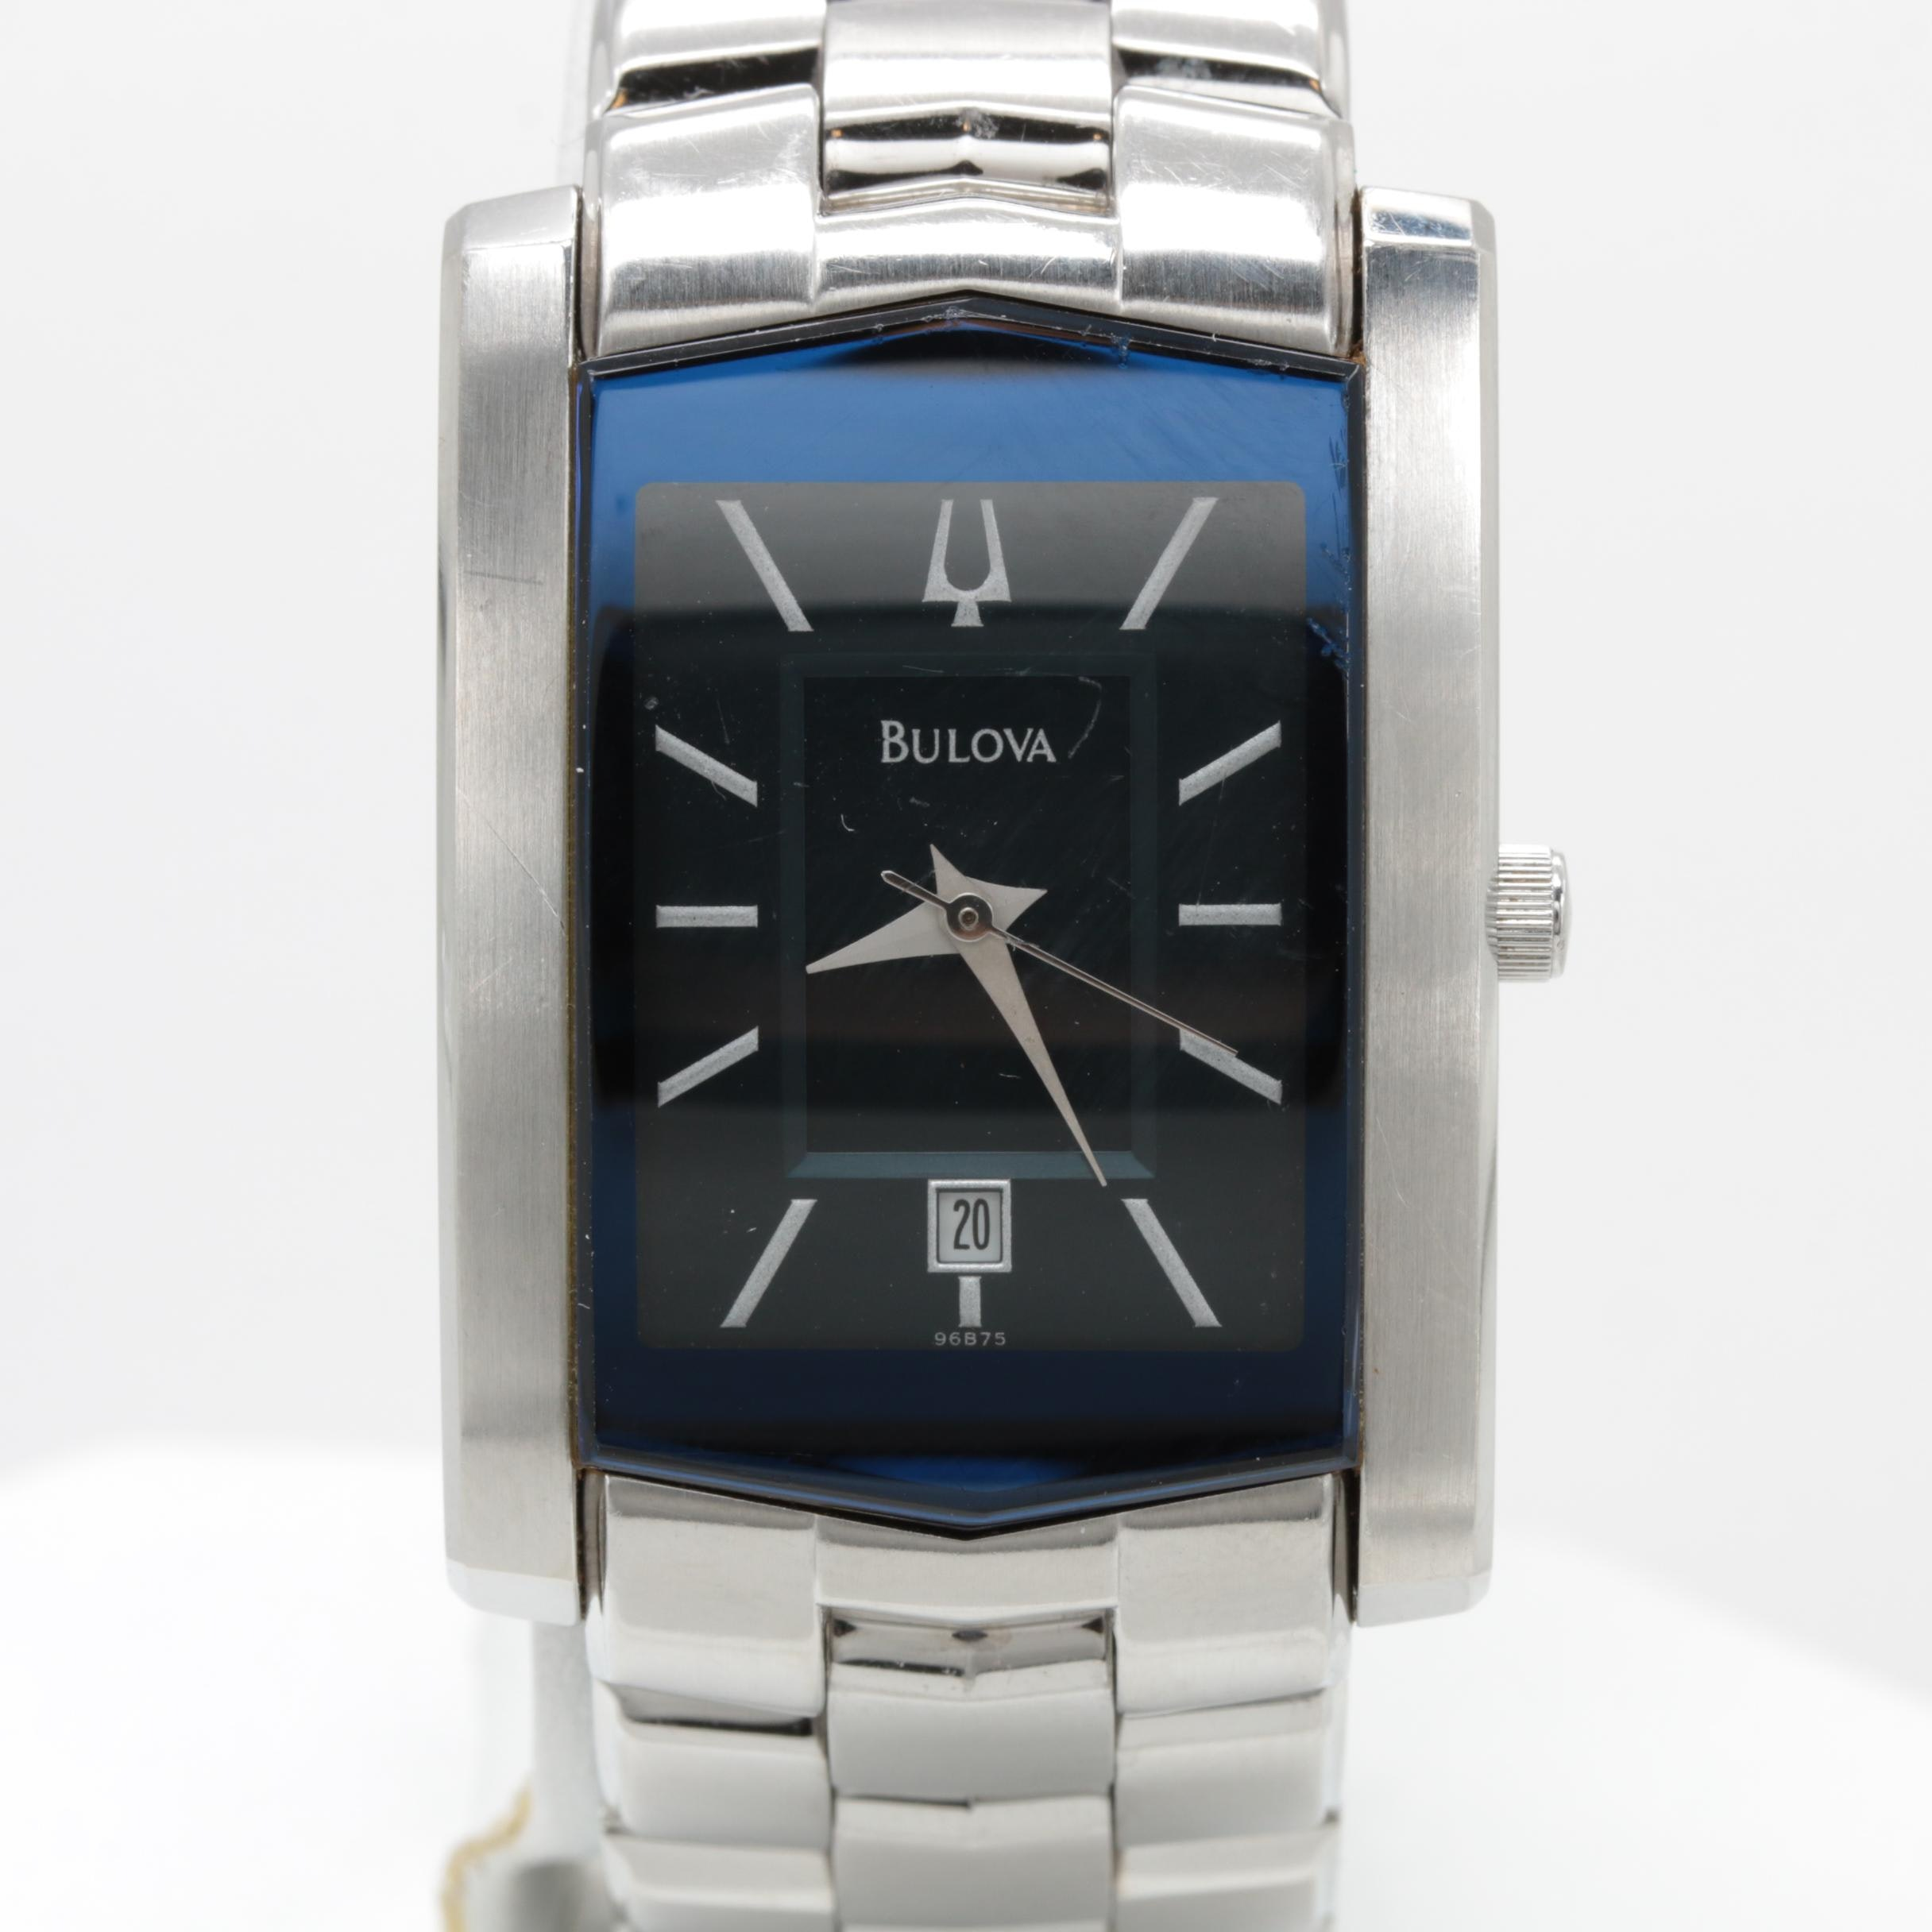 Bulova Stainless Steel Wristwatch